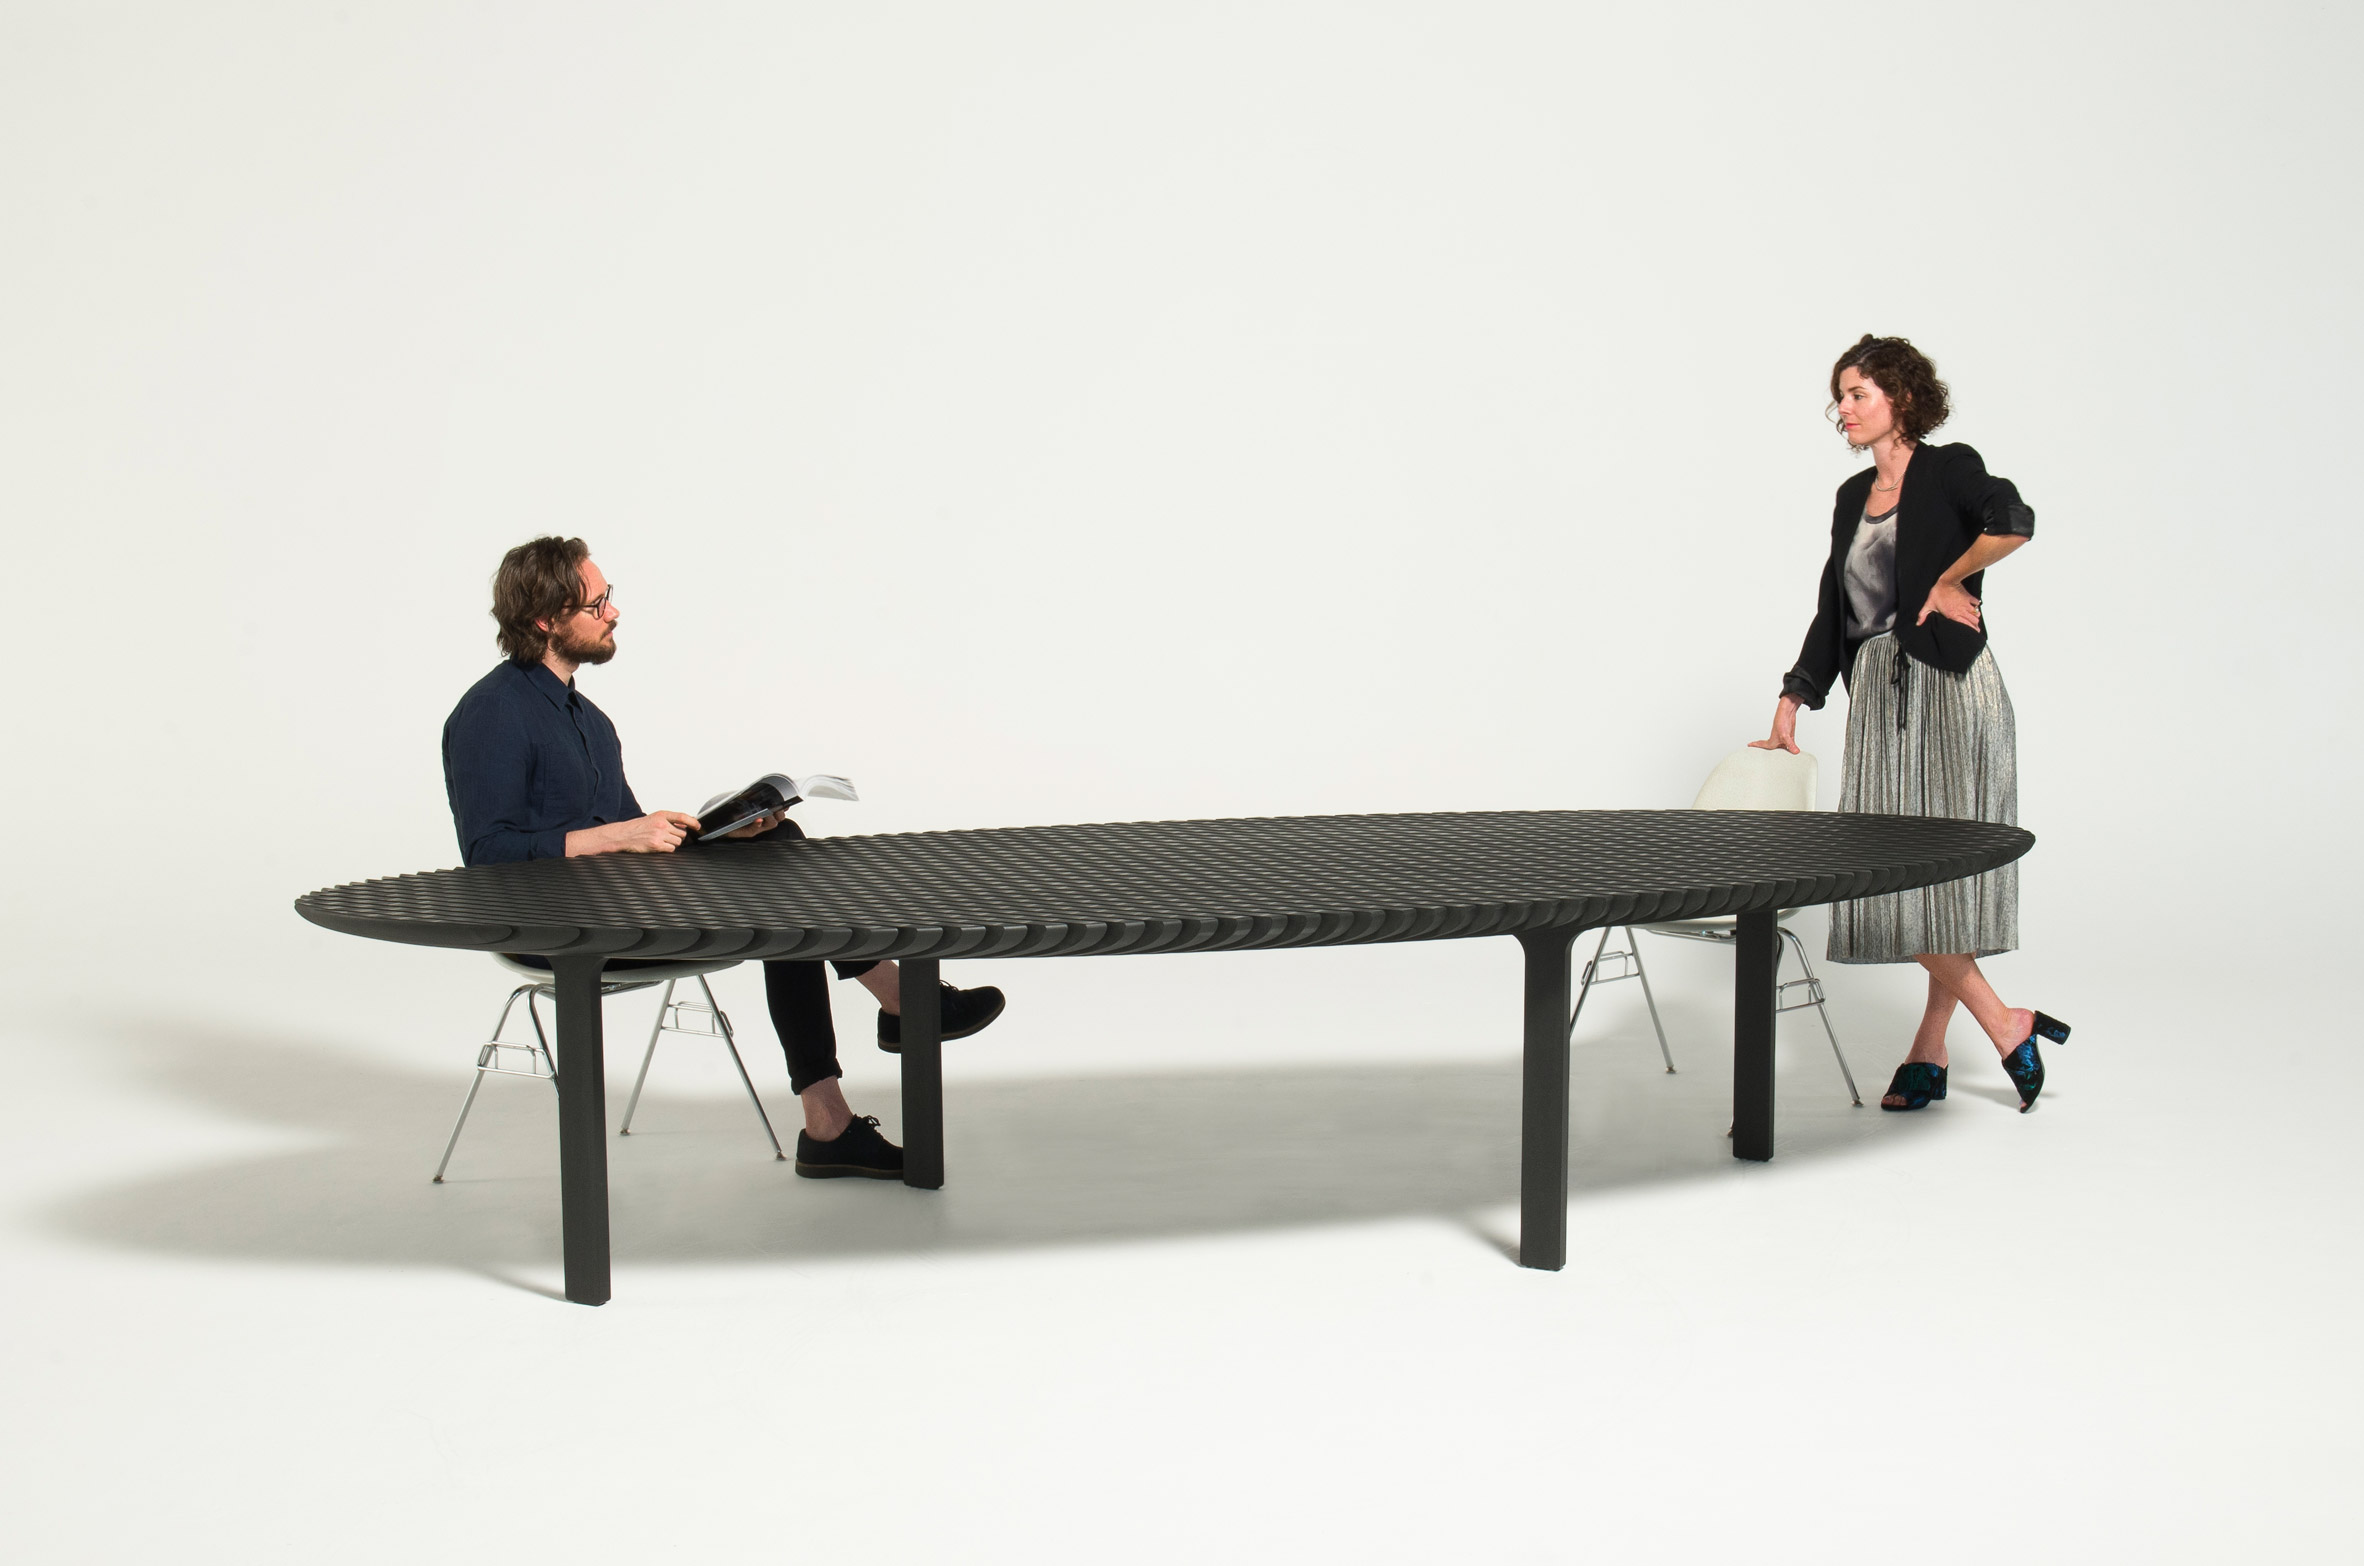 Friction table by Heatherwick Studios